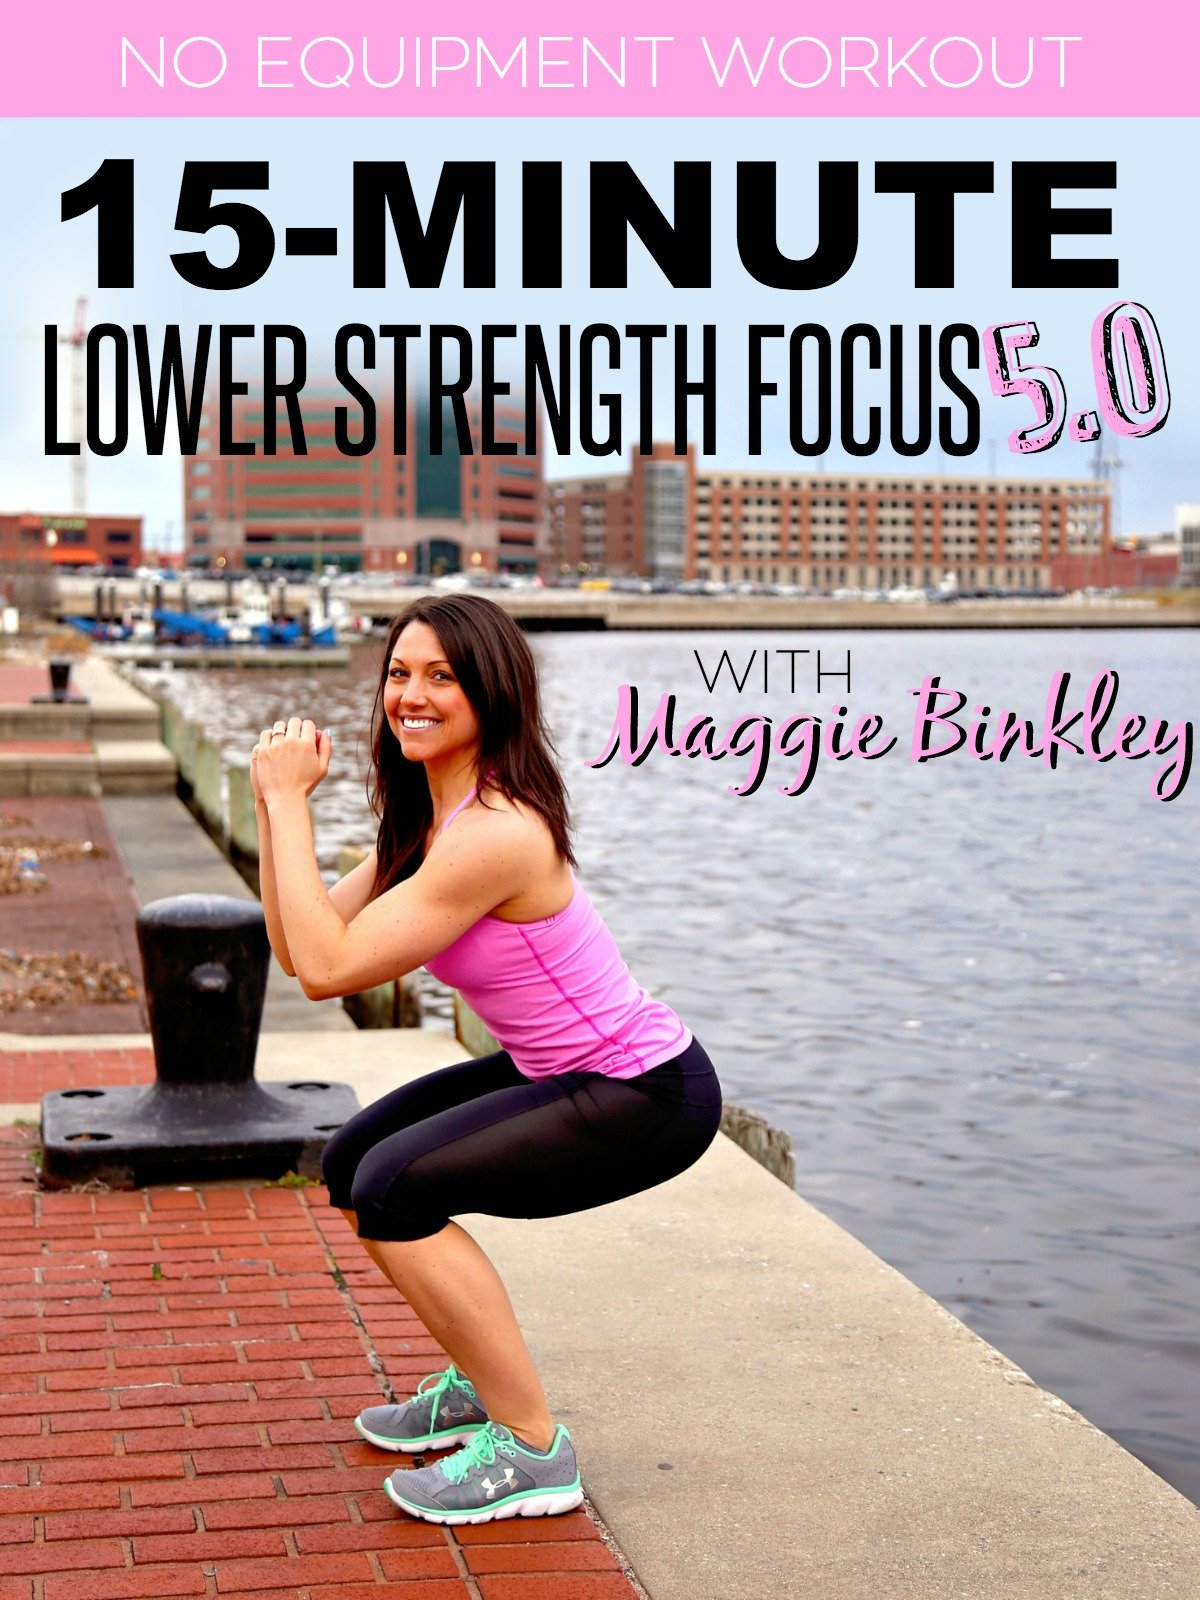 15-Minute Lower Strength Focus 5.0 Workout